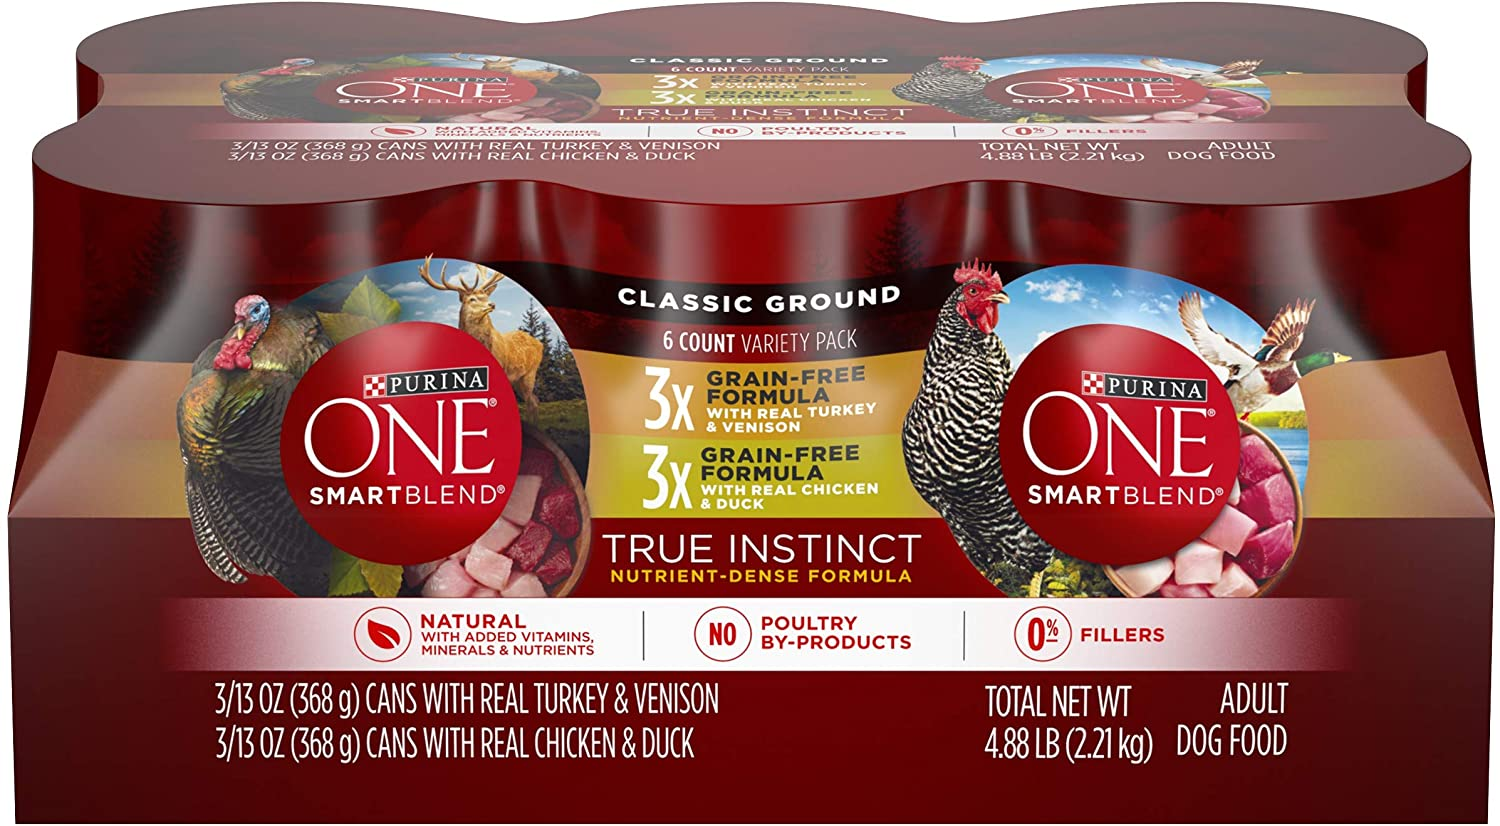 Purina One Smartblend True Instinct Canned Food For Adult Dogs, 12 x 13 oz